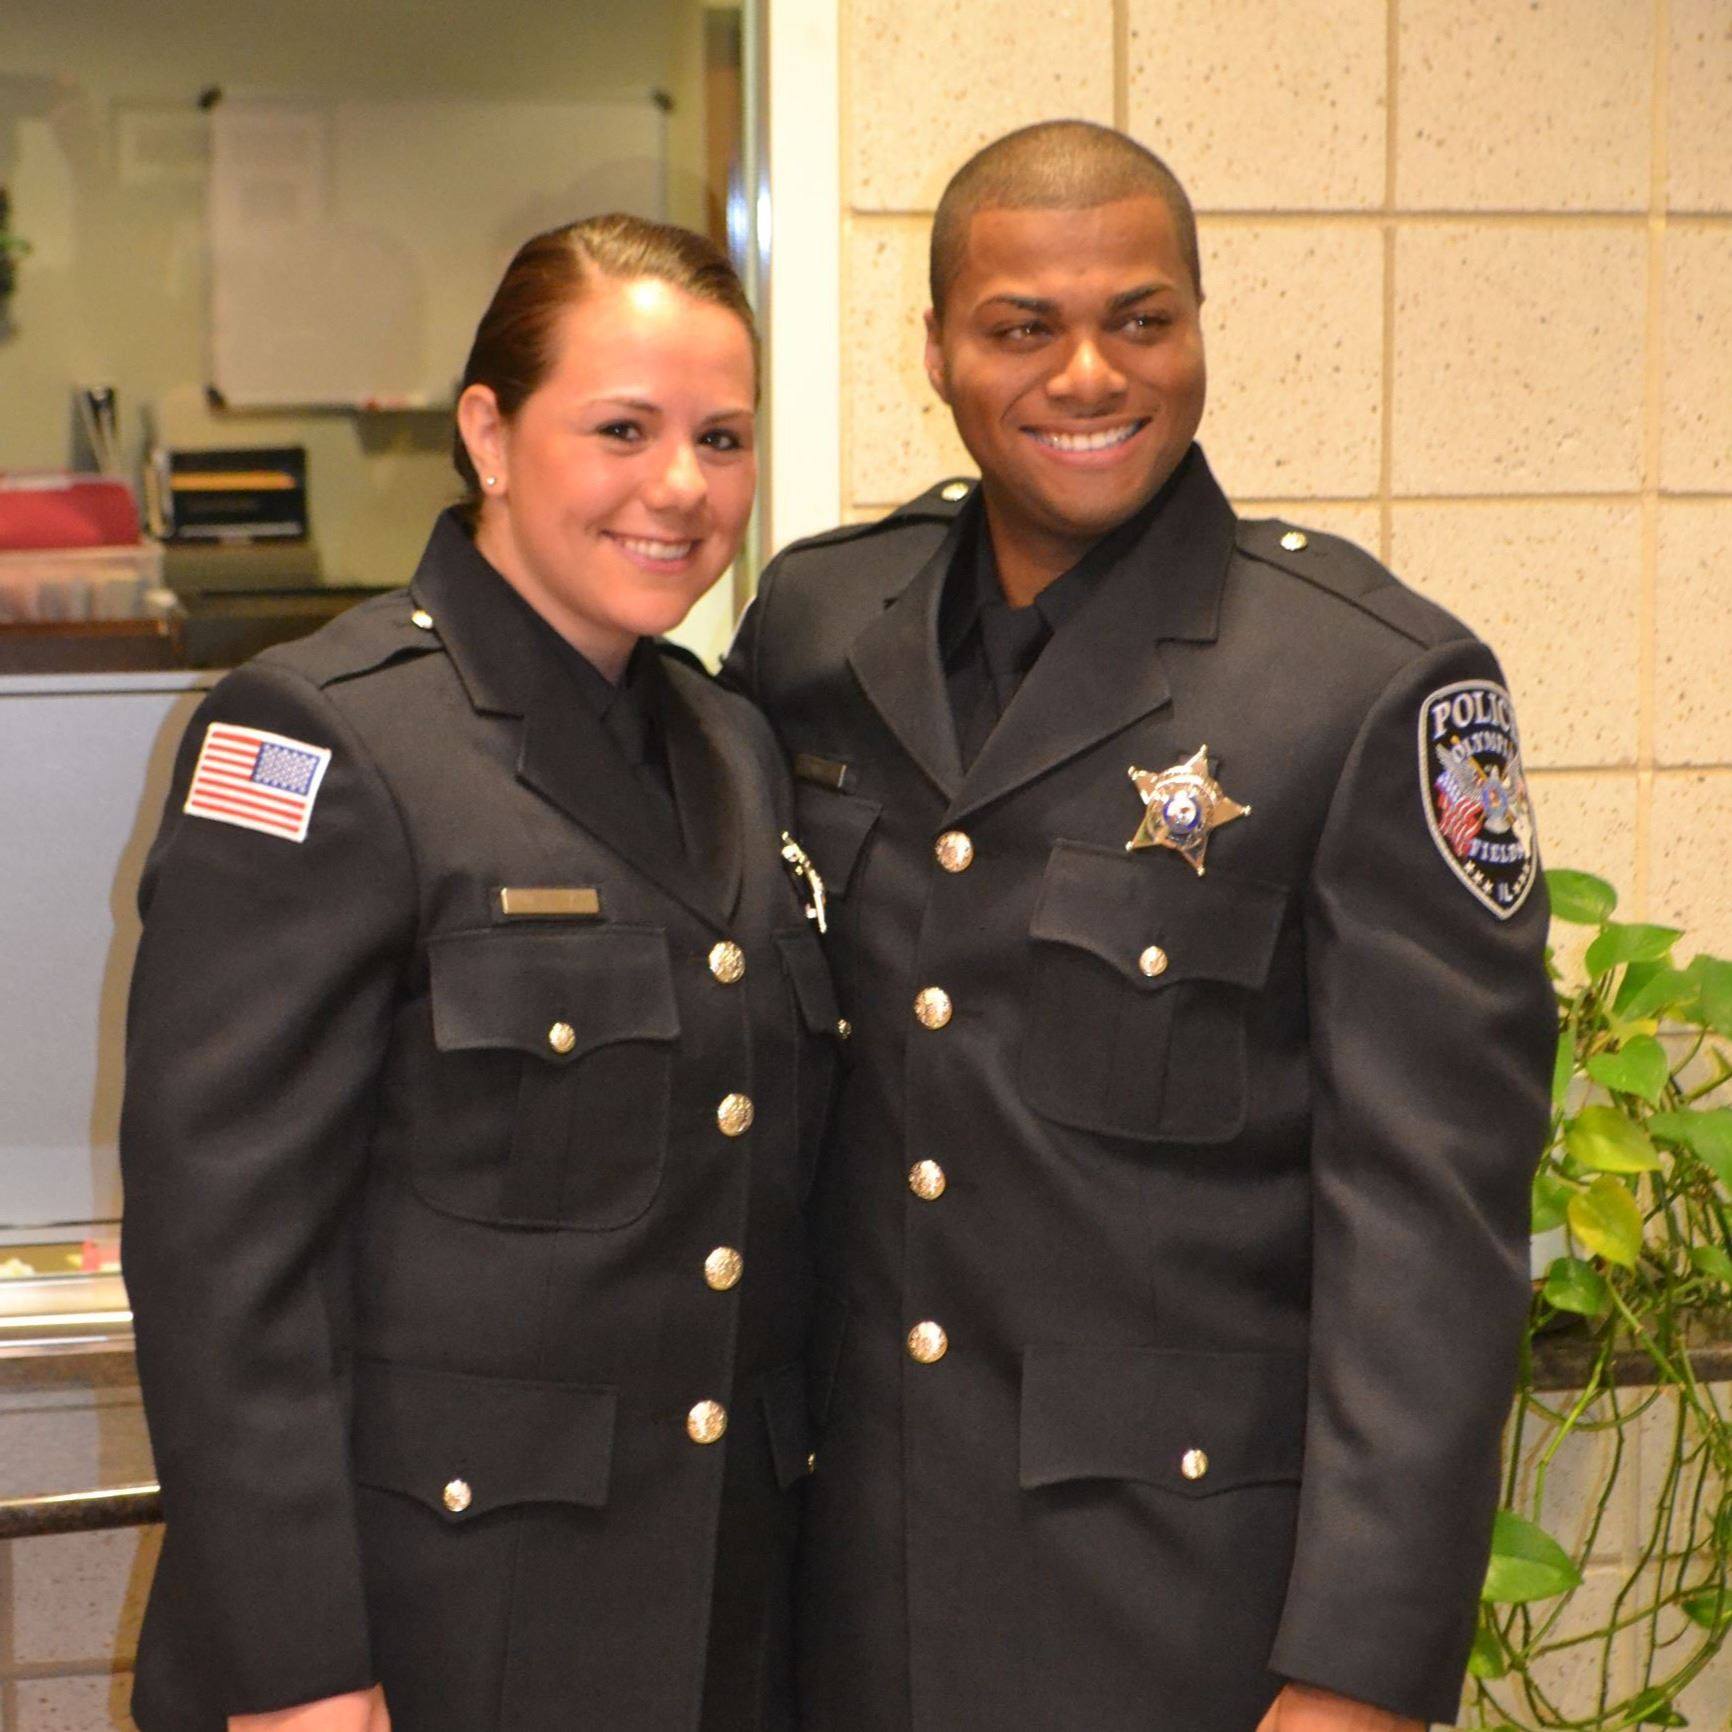 Officers Sheehan and Pennington